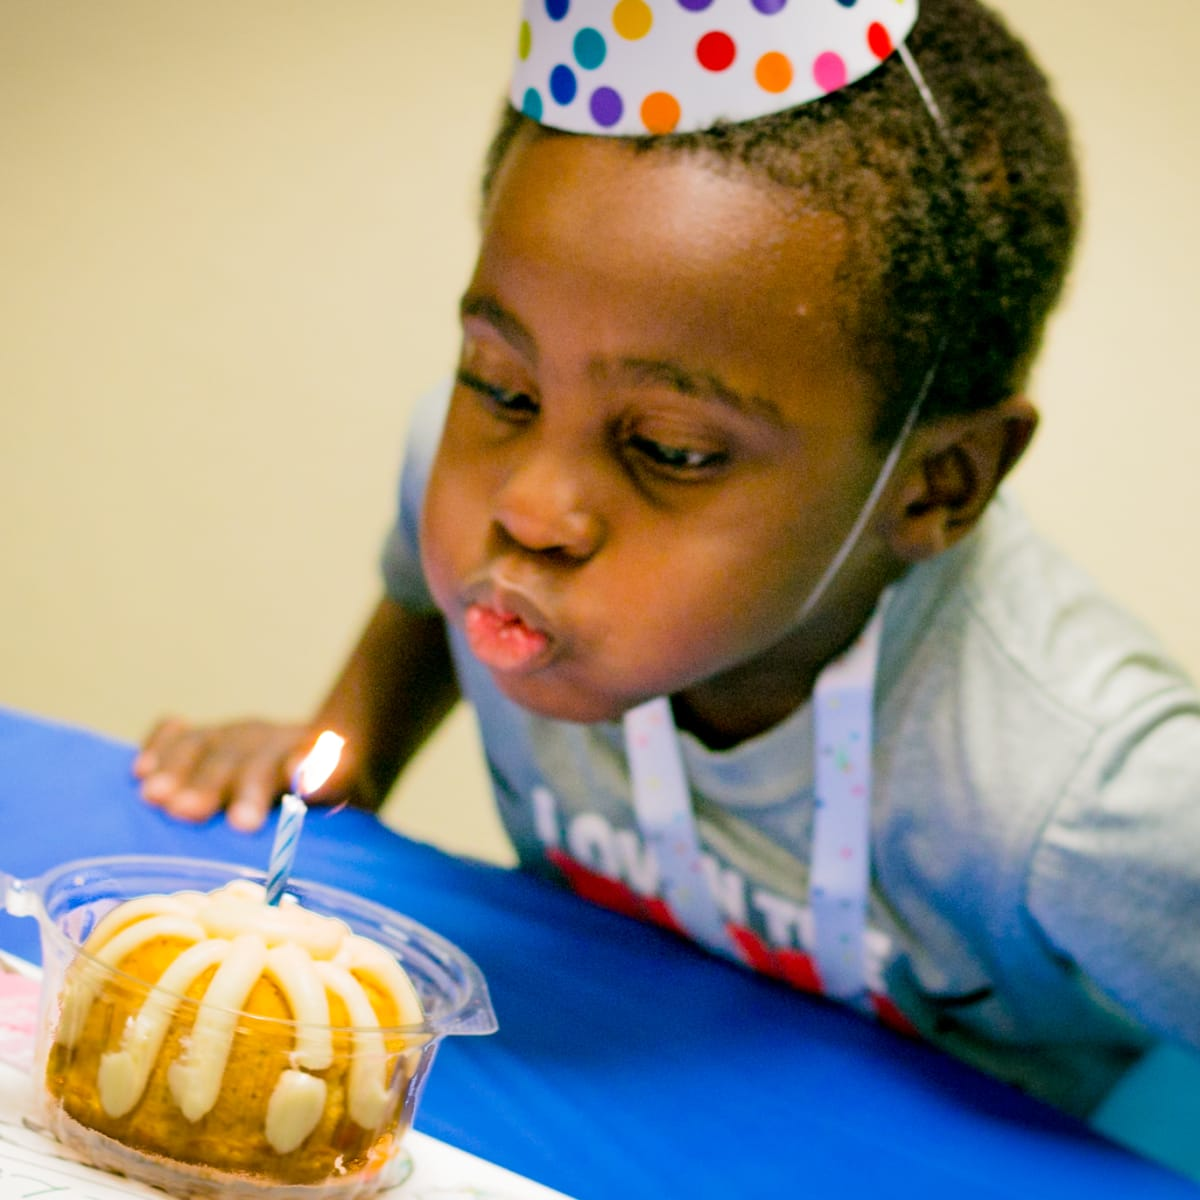 Boy blowing out candle courtesy of Dallas' Birthday Party Project